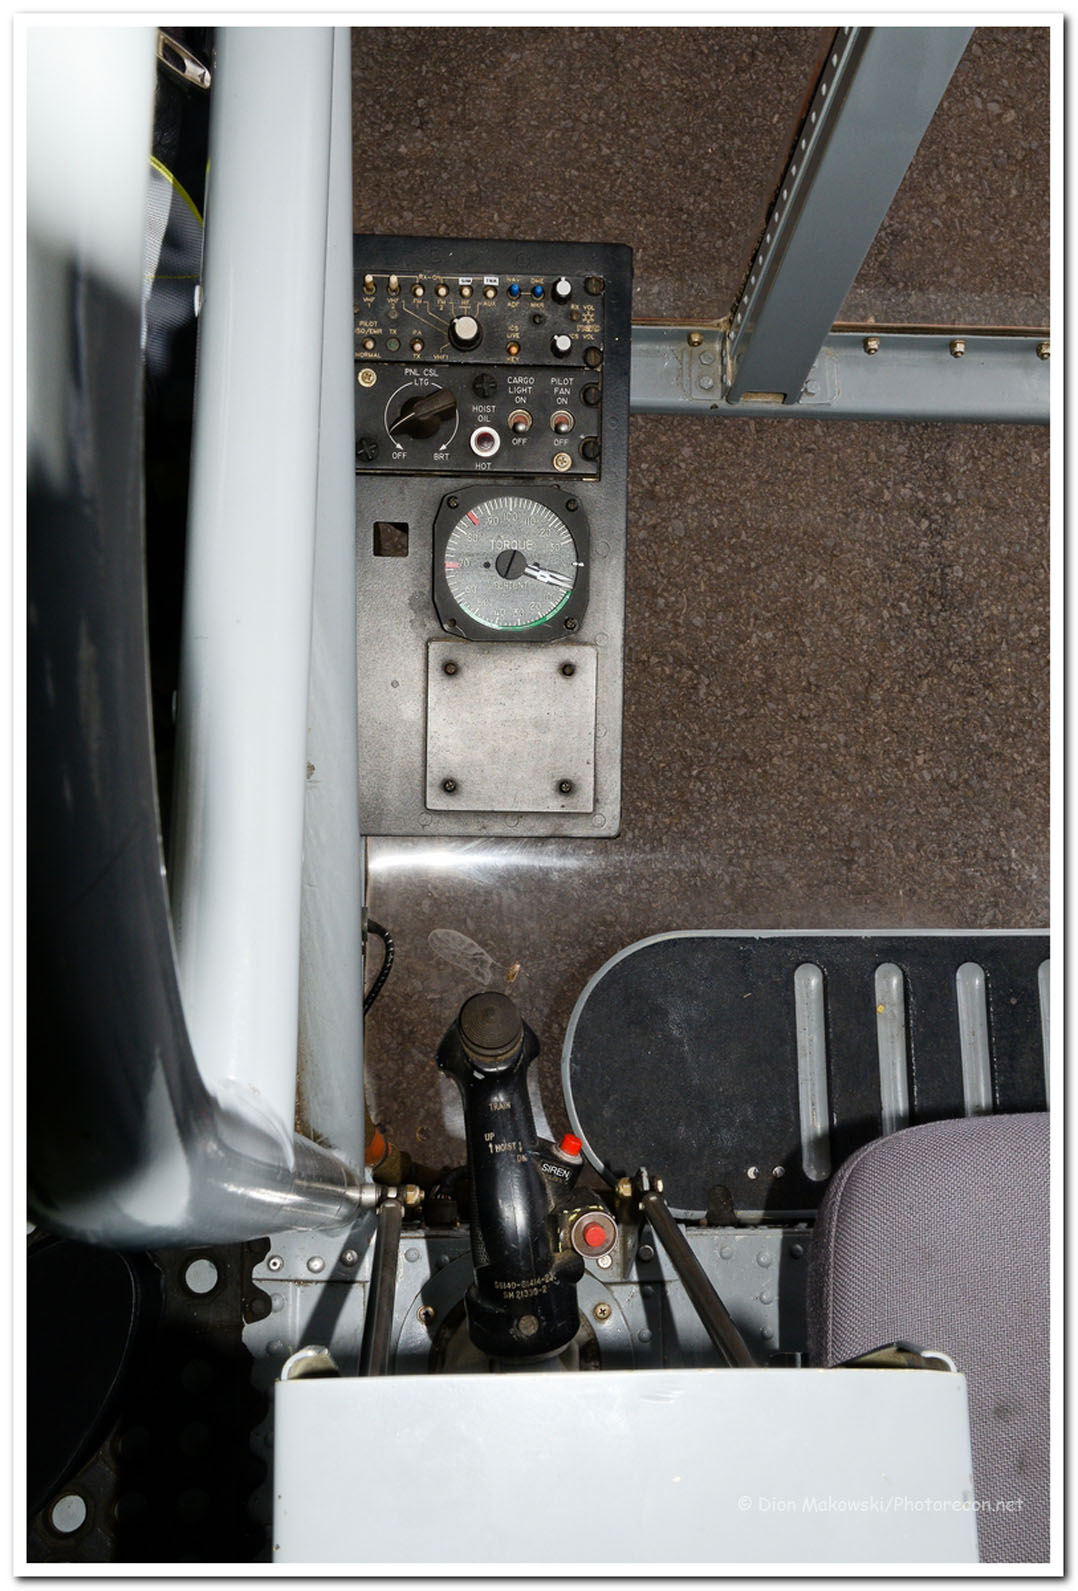 Helitak 341 Rear controls